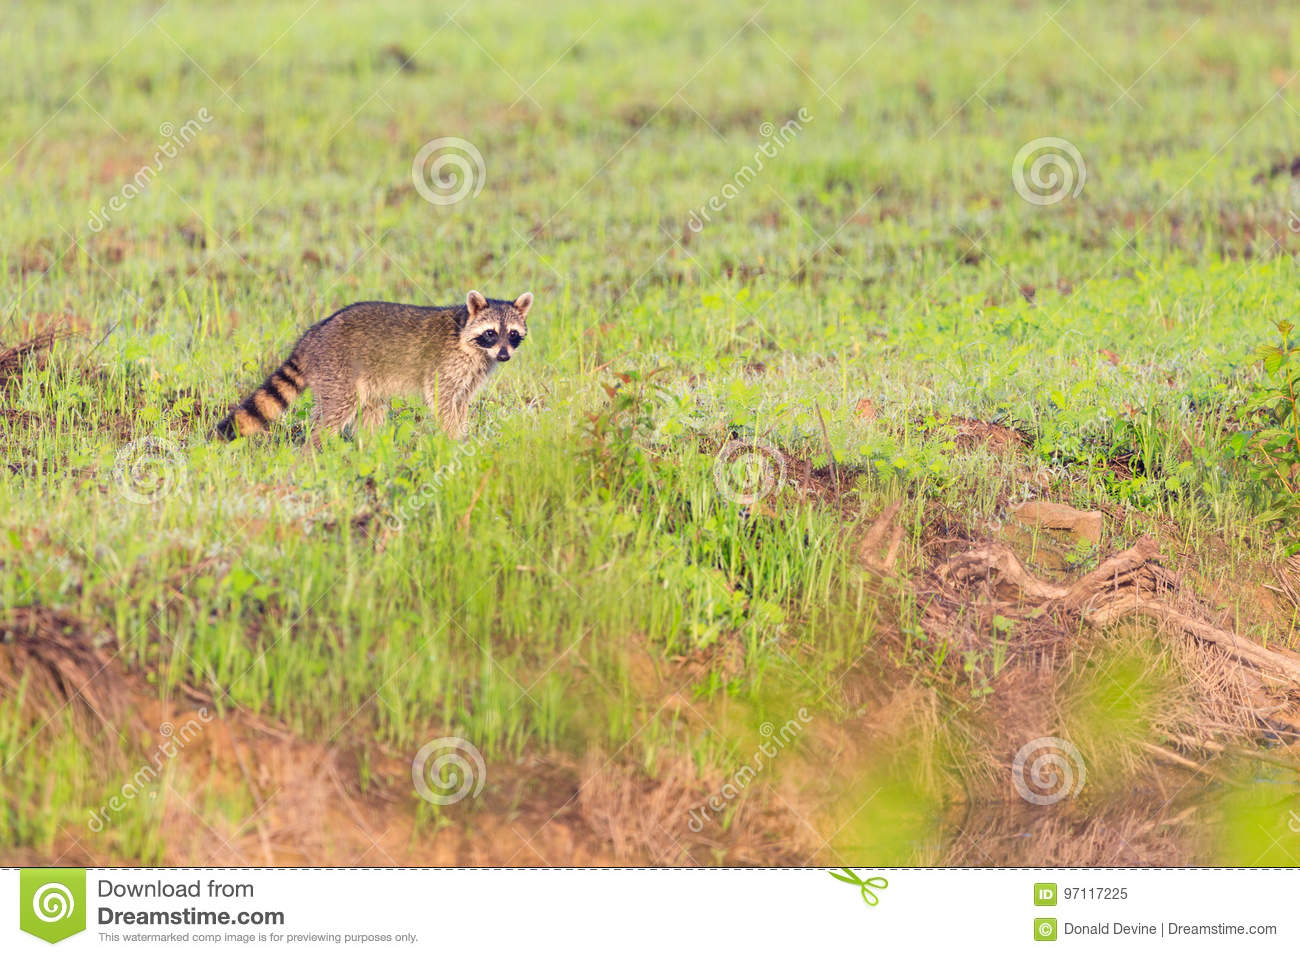 A raccoon foraging for breakfast in the early hours of the morning at Bald Knob Wildlife Refuge